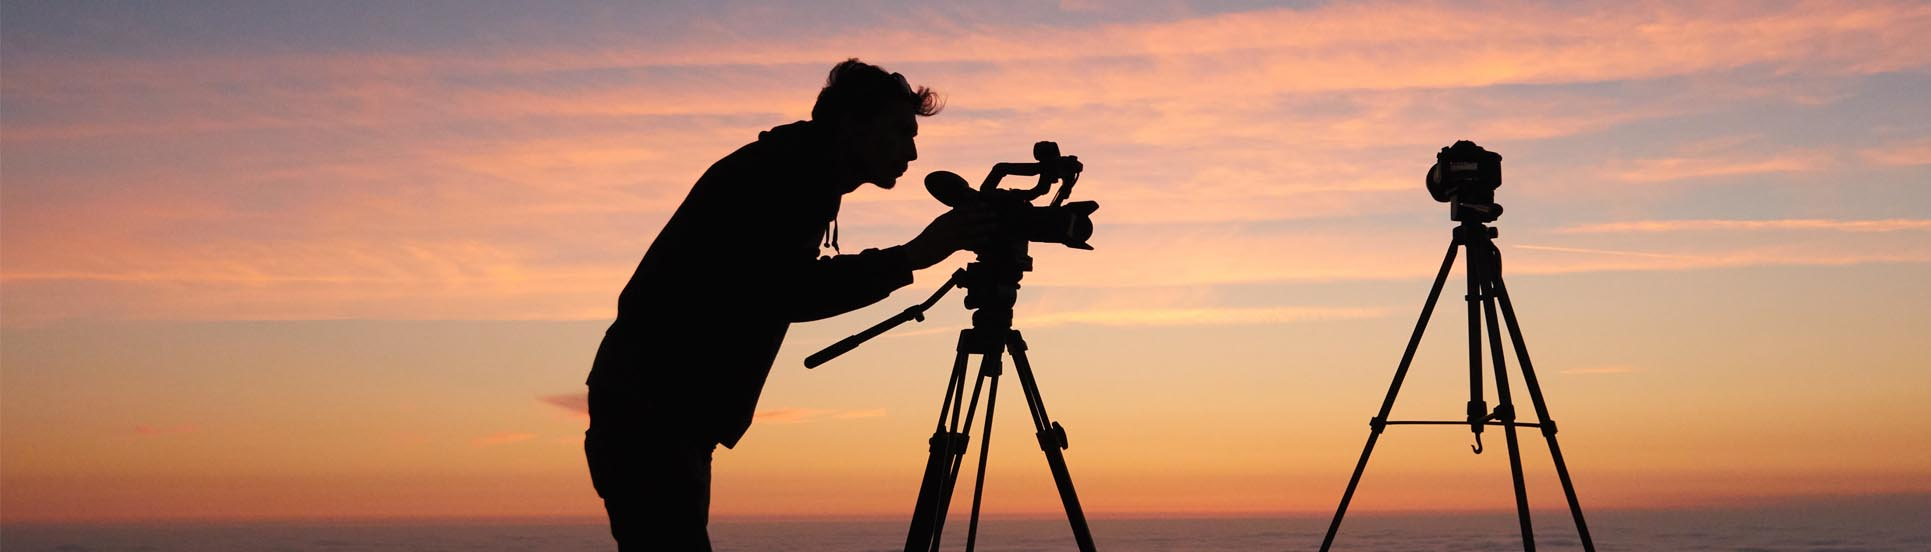 Cameraman golden hour sunset video marketing brand image online strategie verhaal storytelling